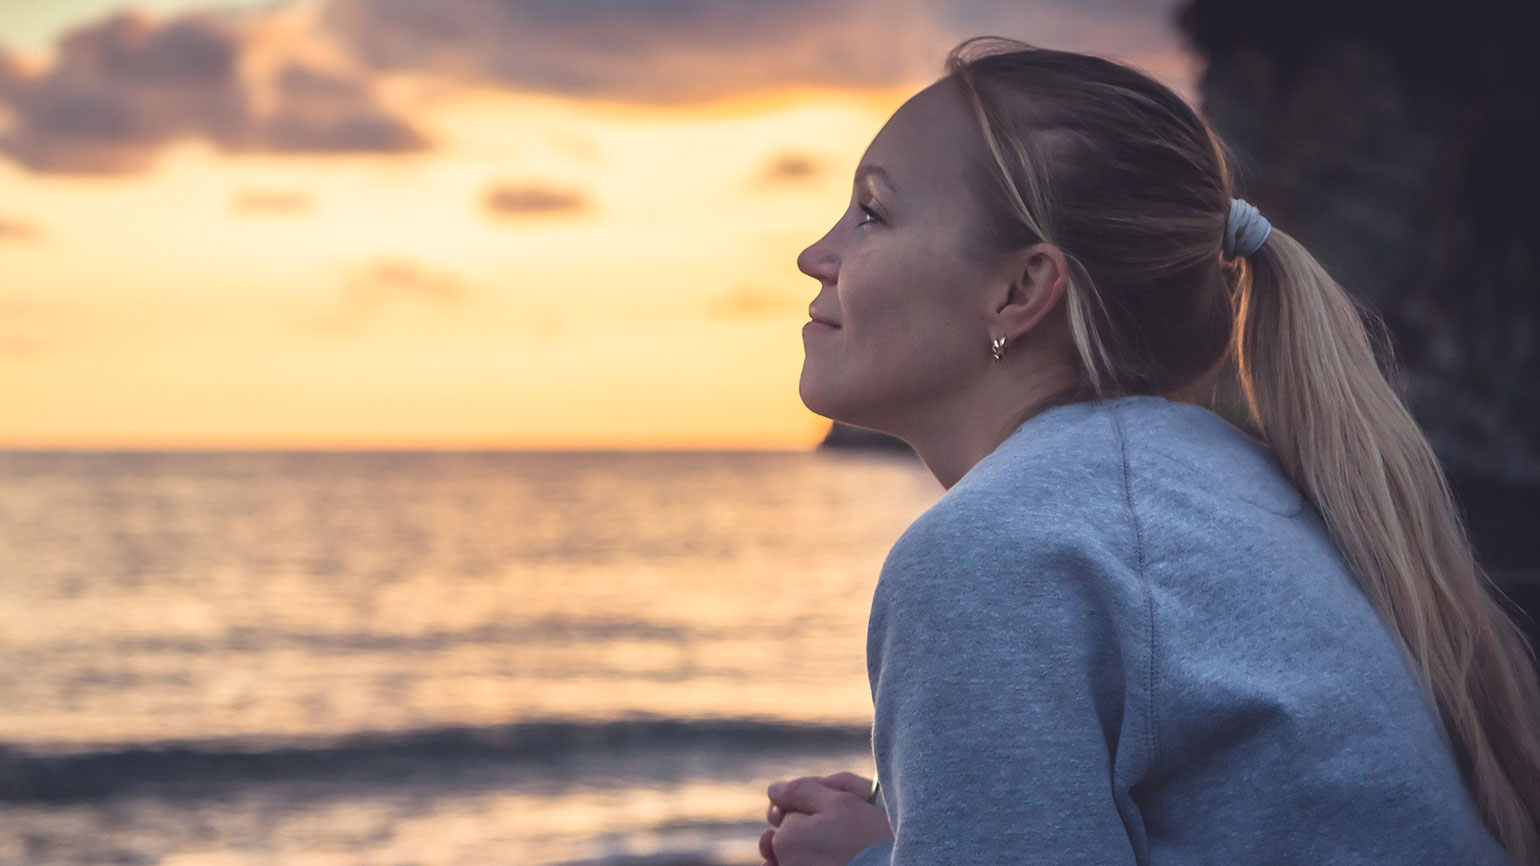 A contented woman looks out at a sunset over a beach